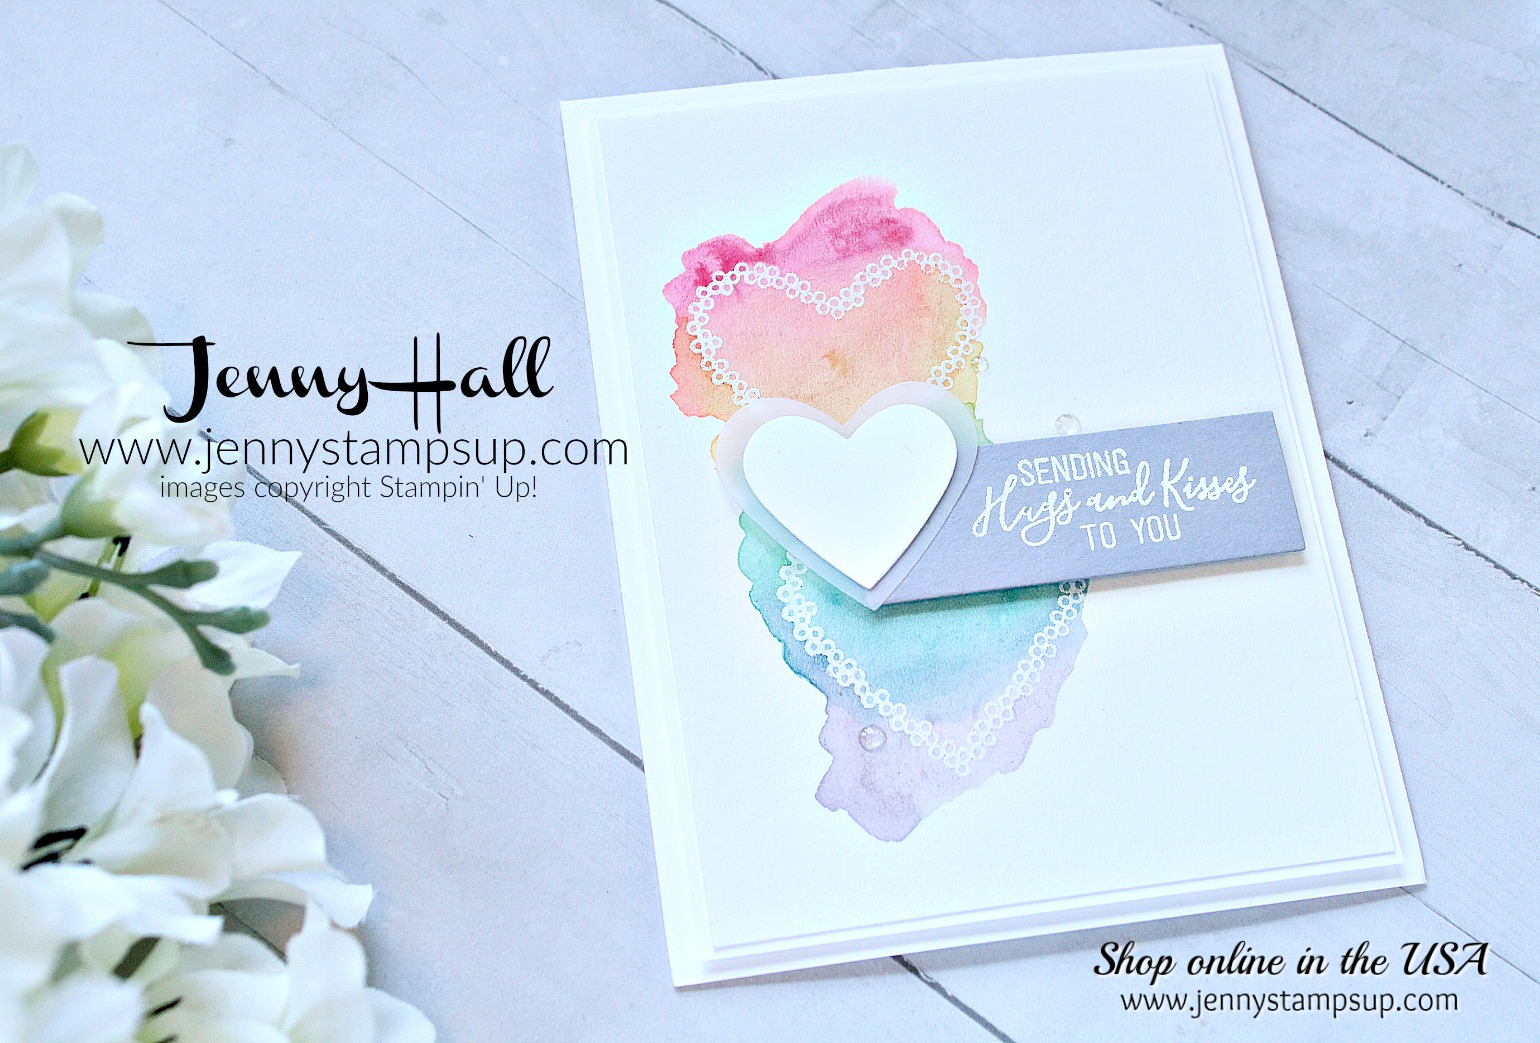 Hearts and rainbows card by Jenny Hall at www.jennyhalldesign.com for #cardmaking #hearts #rainbows #watercolor #watercolorcard #watercolorrainbow #watercolorhearts #diy #cardmaking #stampinup #stamping #cascards #cleanandsimplecards #paperpumpkin #hearthappiness #paperpumpkinalternate #jennyhalldesign #jennystampsup #jennyhallstampinup #halljenny #jennyhallcards